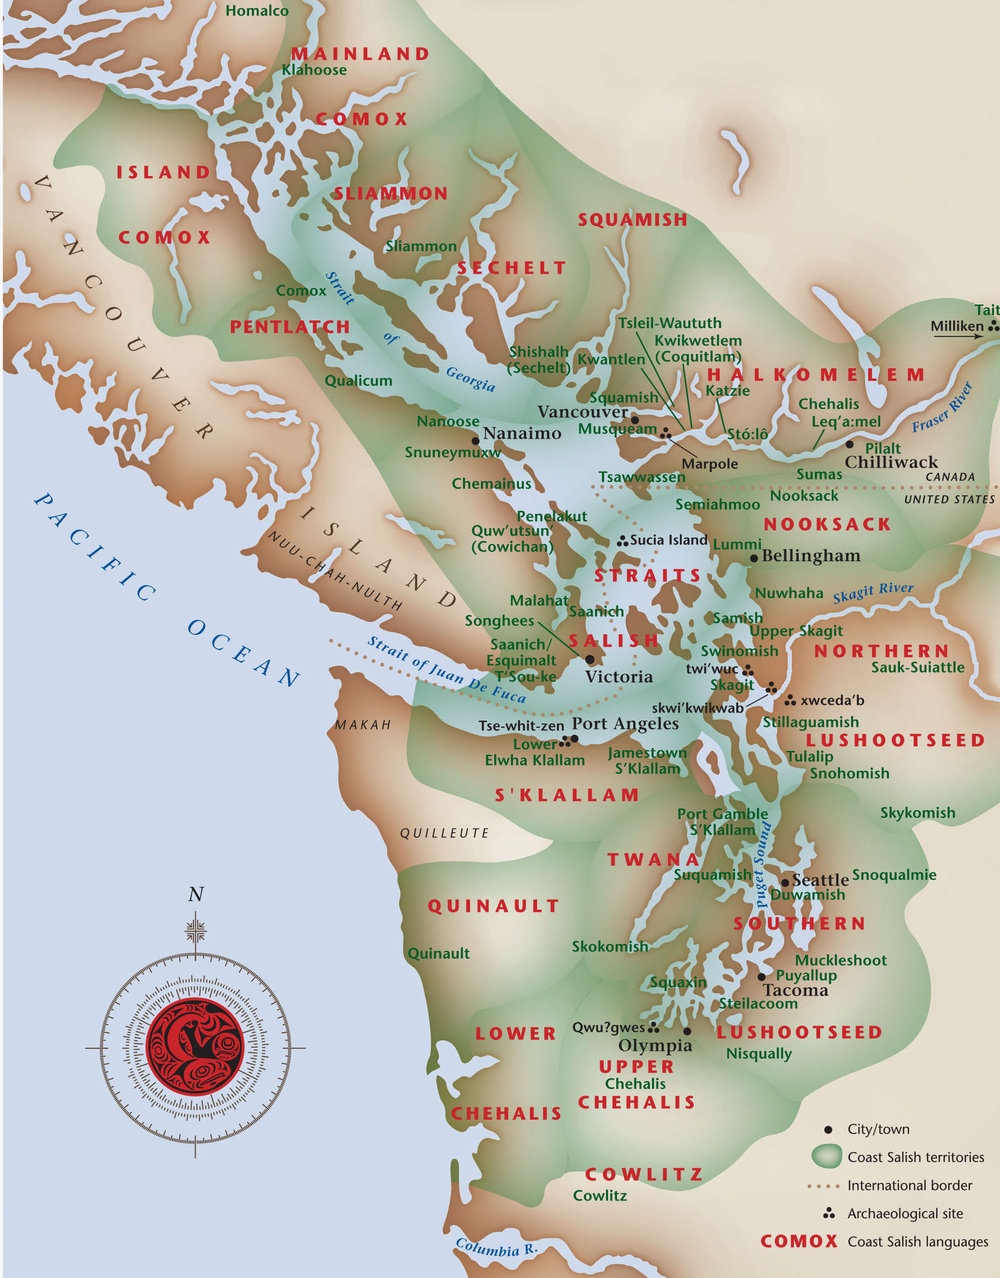 COAST SALISH TRADITIONAL TERRITORIES